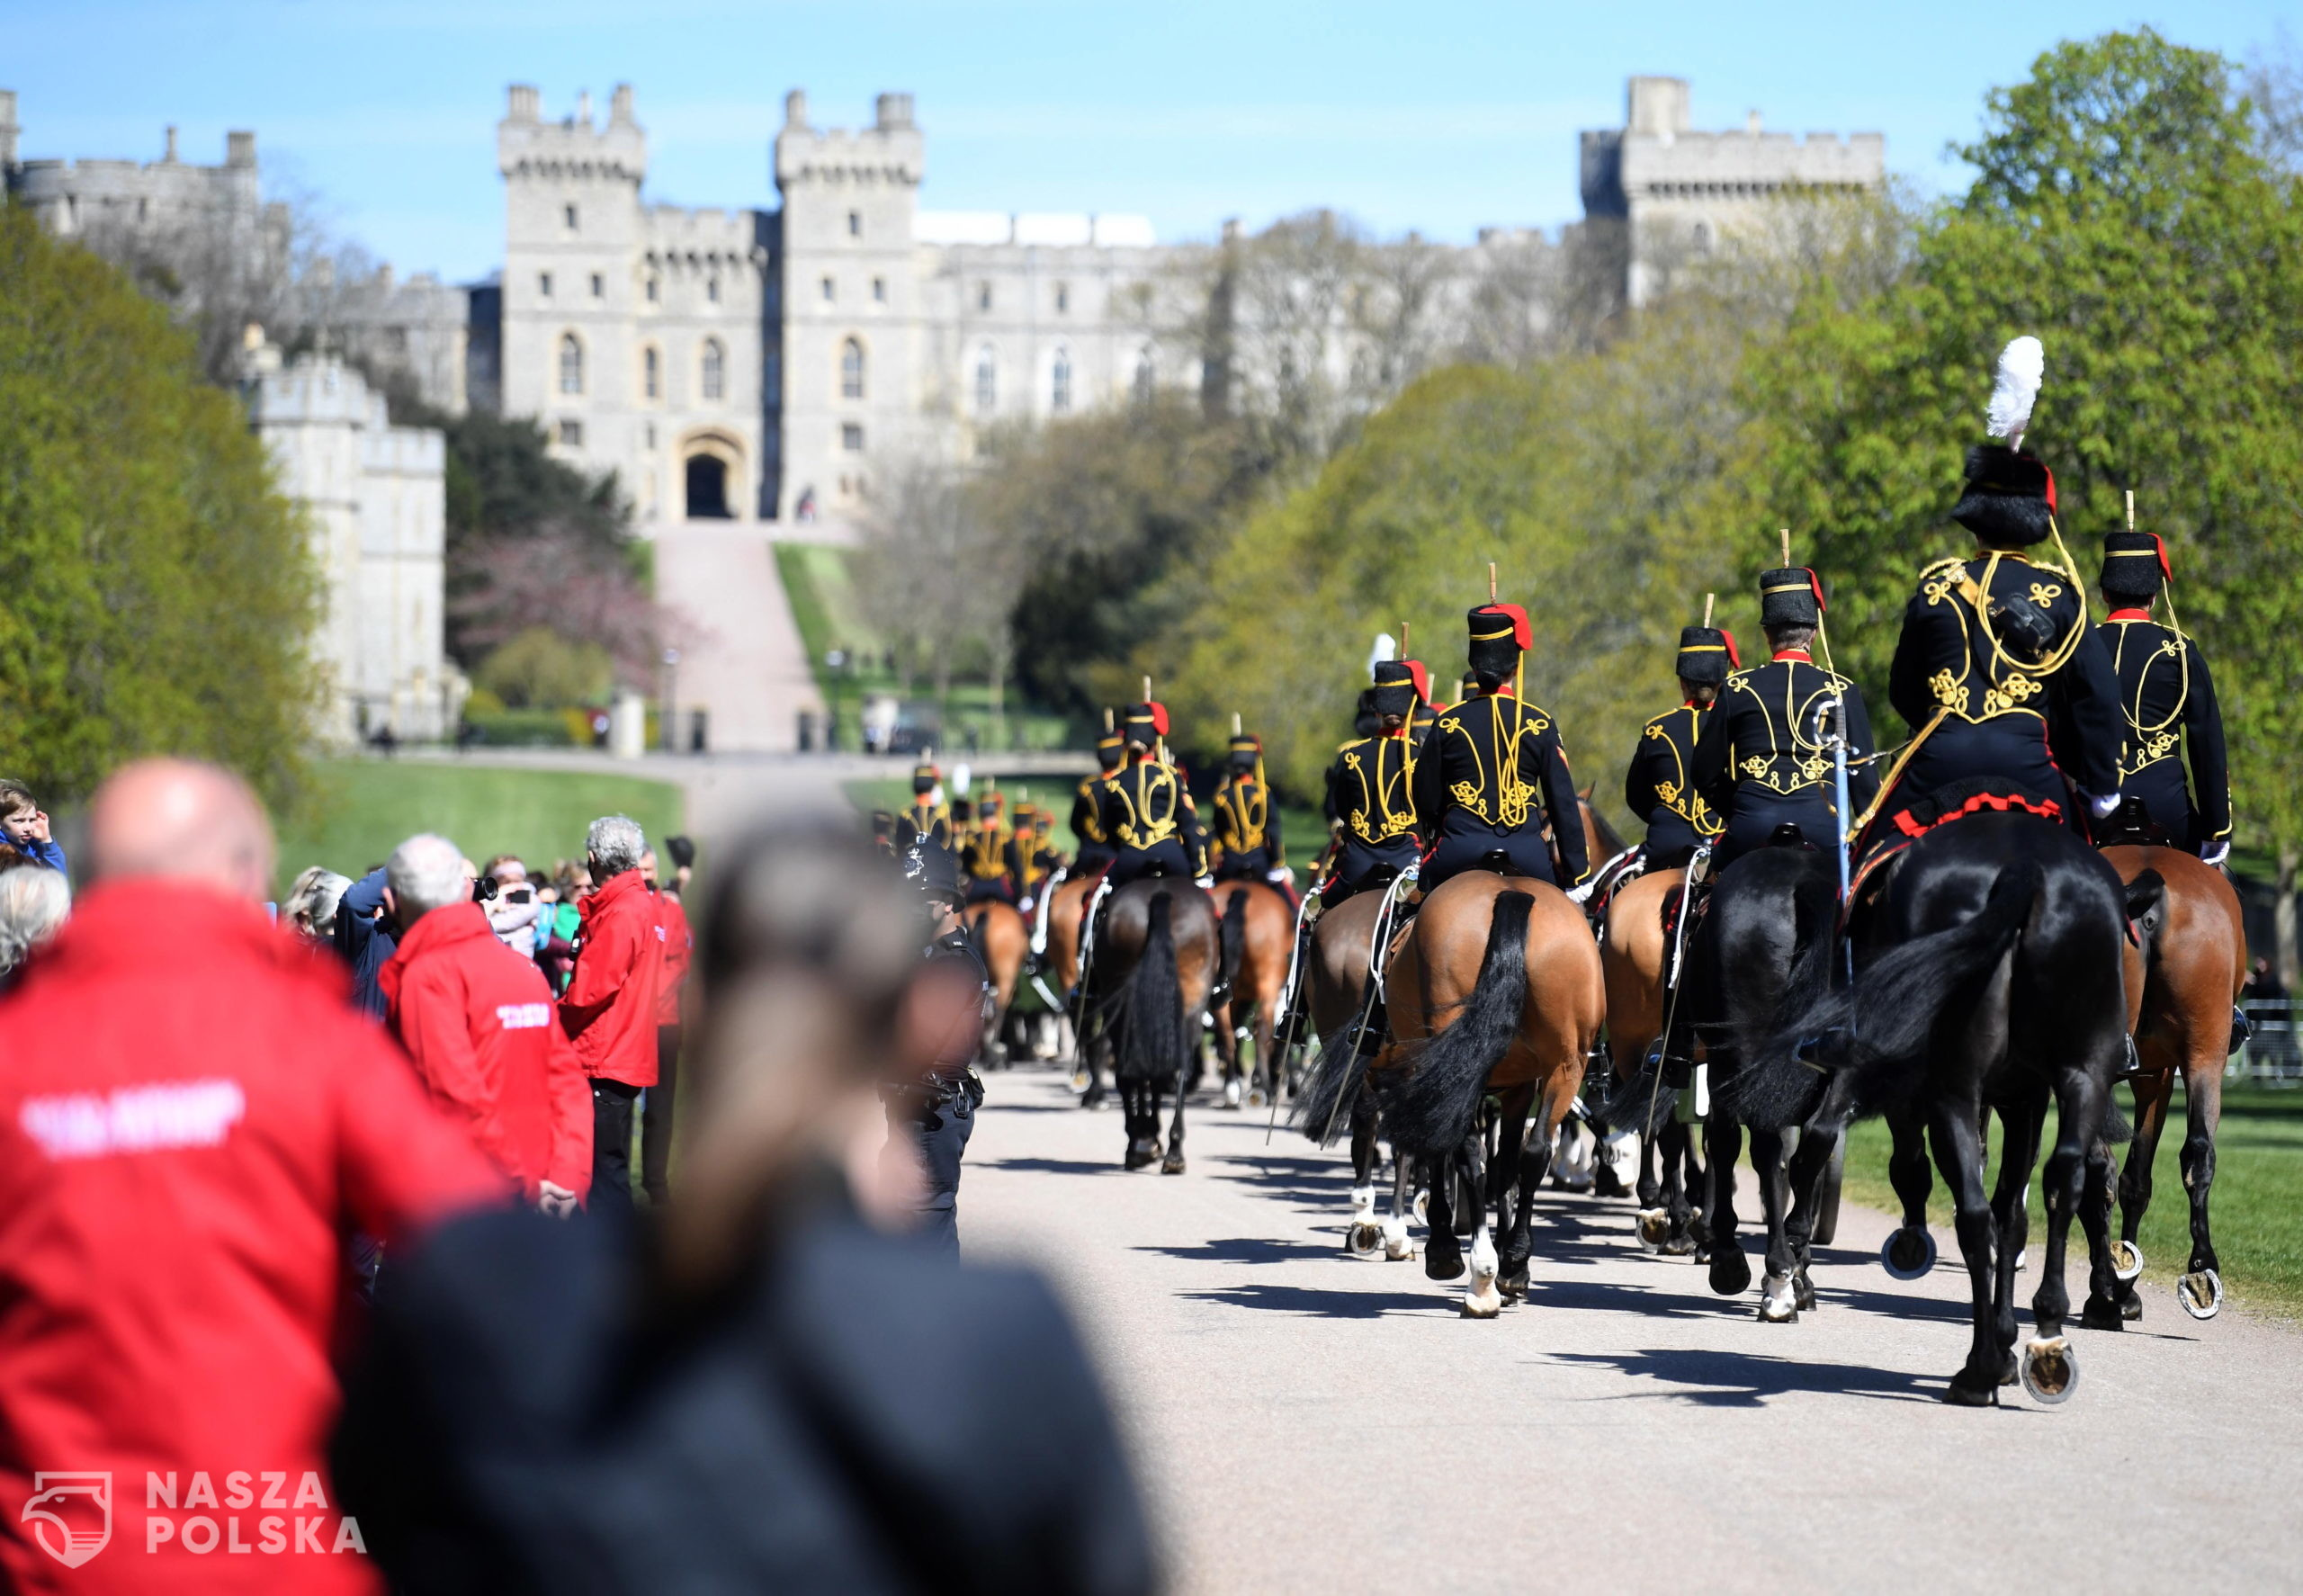 epa09141116 The Kings Troop Royal Horse Artillery arrive on the Long Walk to Windsor Castle following the passing of Britain's Prince Philip, in Windsor, Britain, 17 April 2021. Britain's Prince Philip, the Duke of Edinburgh, has died on 09 April 2021 aged 99 and his funeral will take place in Windsor on 17 April.  EPA/NEIL HALL  Dostawca: PAP/EPA.